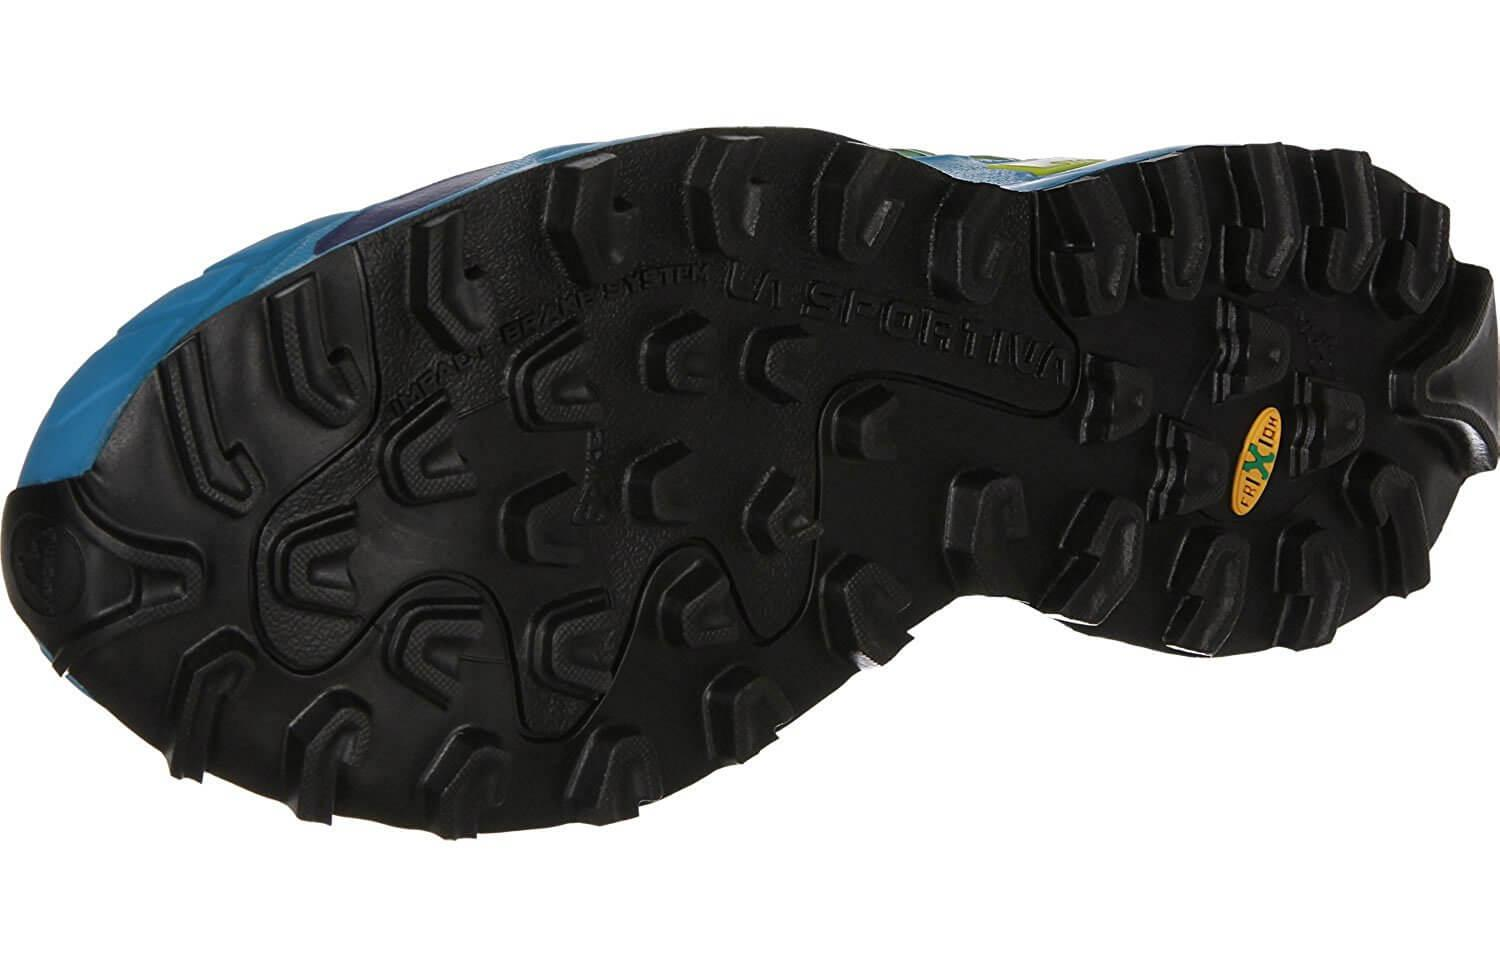 the outsole of the La Sportiva Mutant features tenacious treads and allows runners to screw in separate spikes for more traction